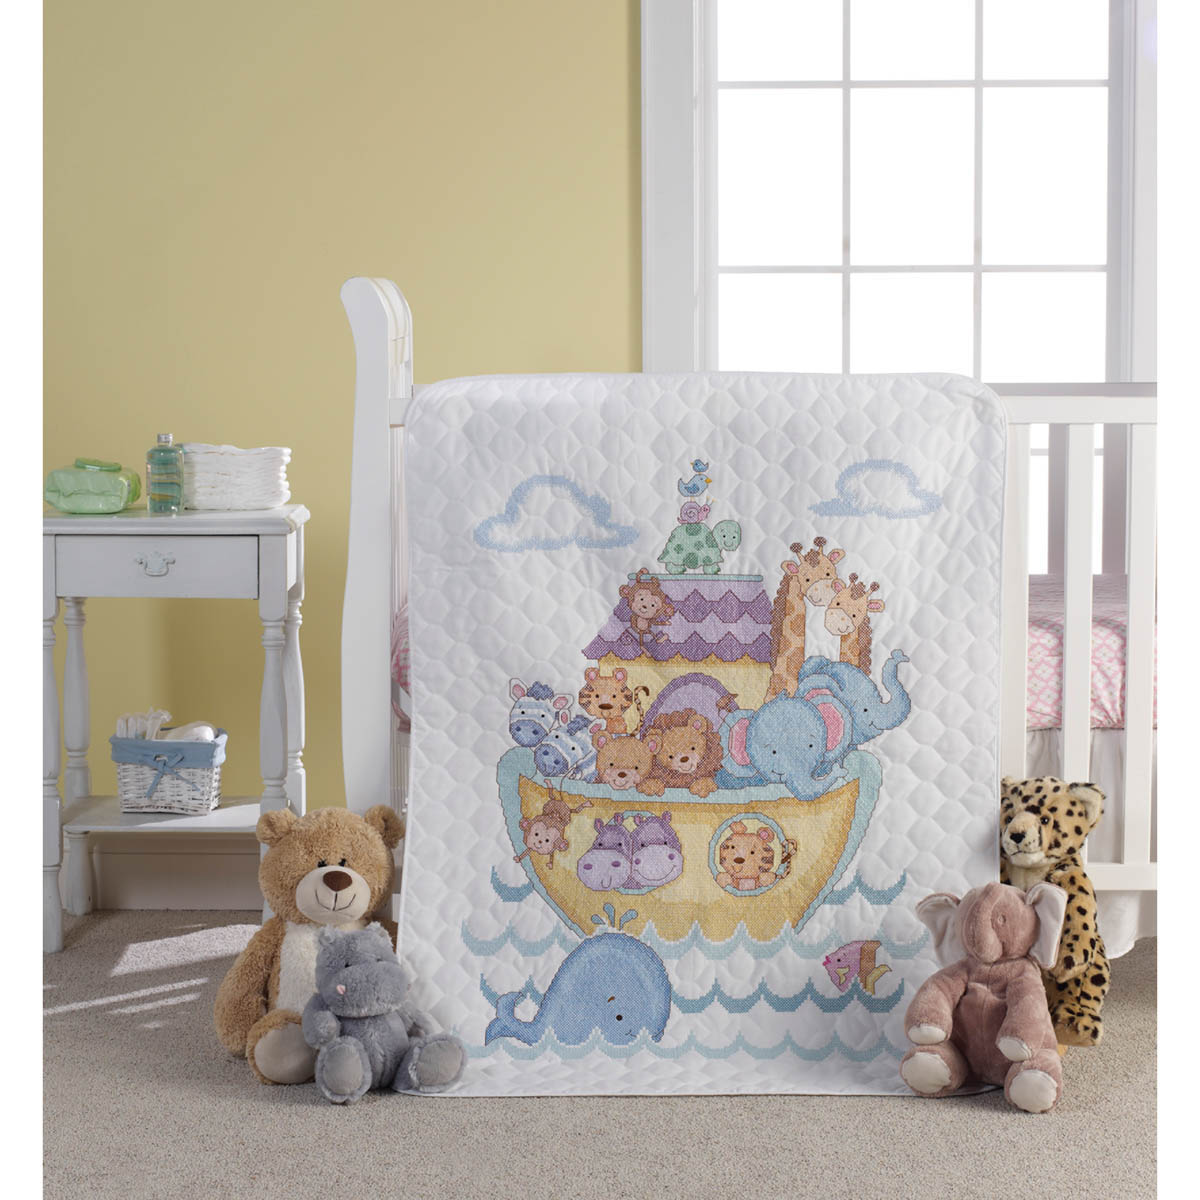 Bucilla ® Baby - Stamped Cross Stitch - Crib Ensembles - Noah's Ark - Crib Cover Kit